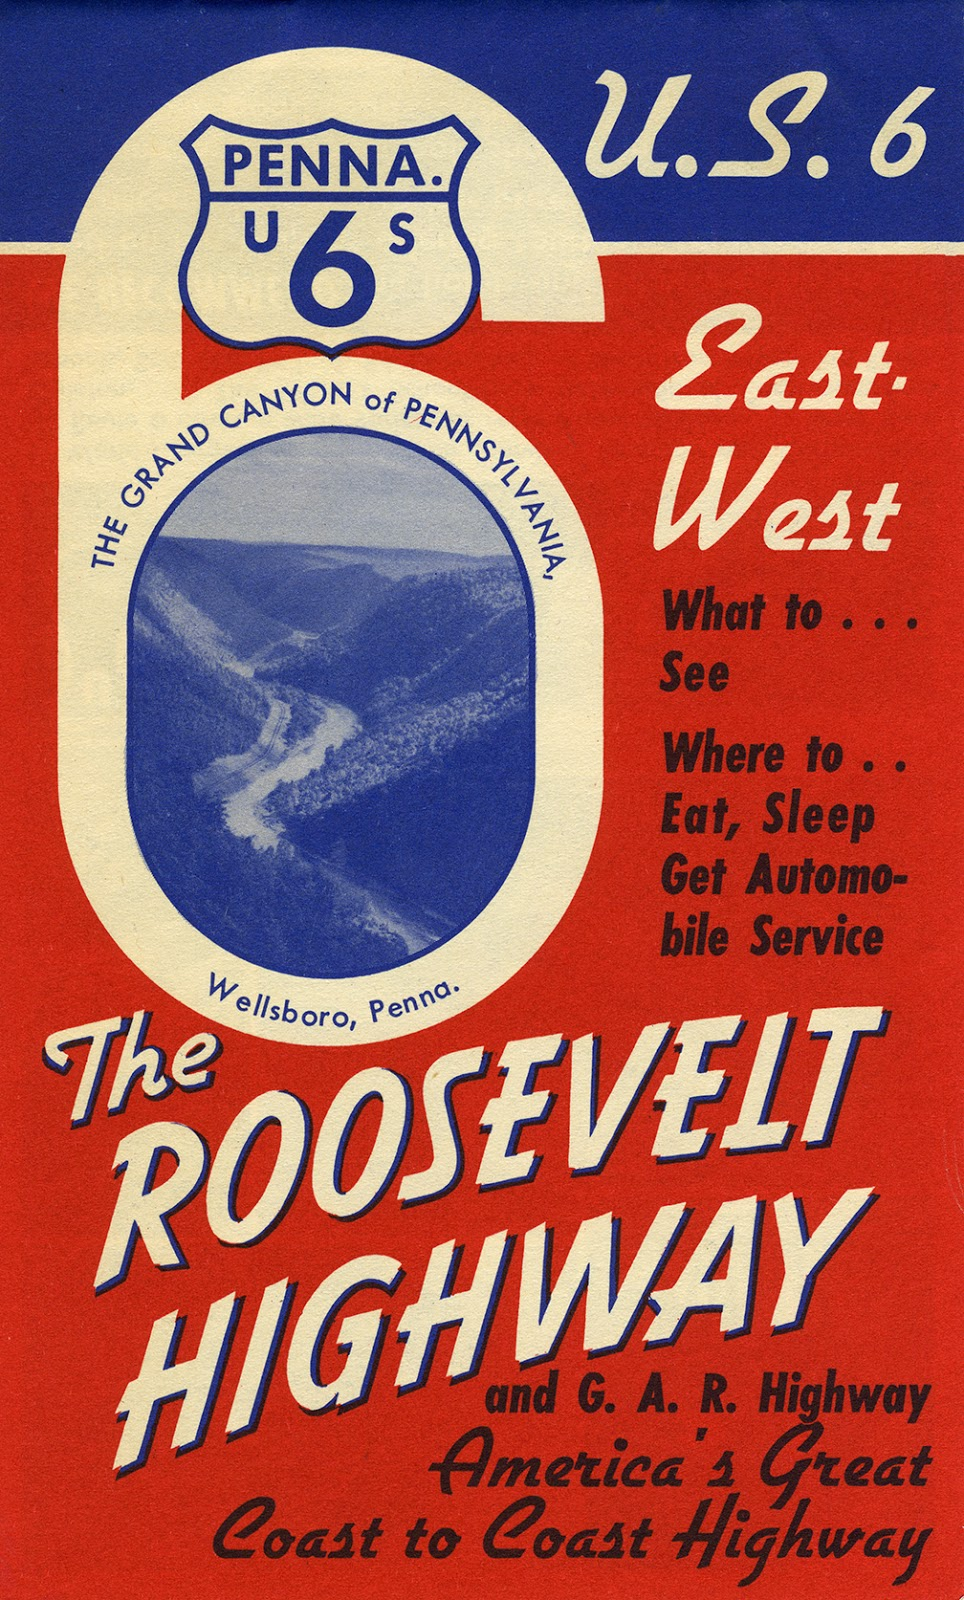 Roosevelt Highway brochure cover - date unknown